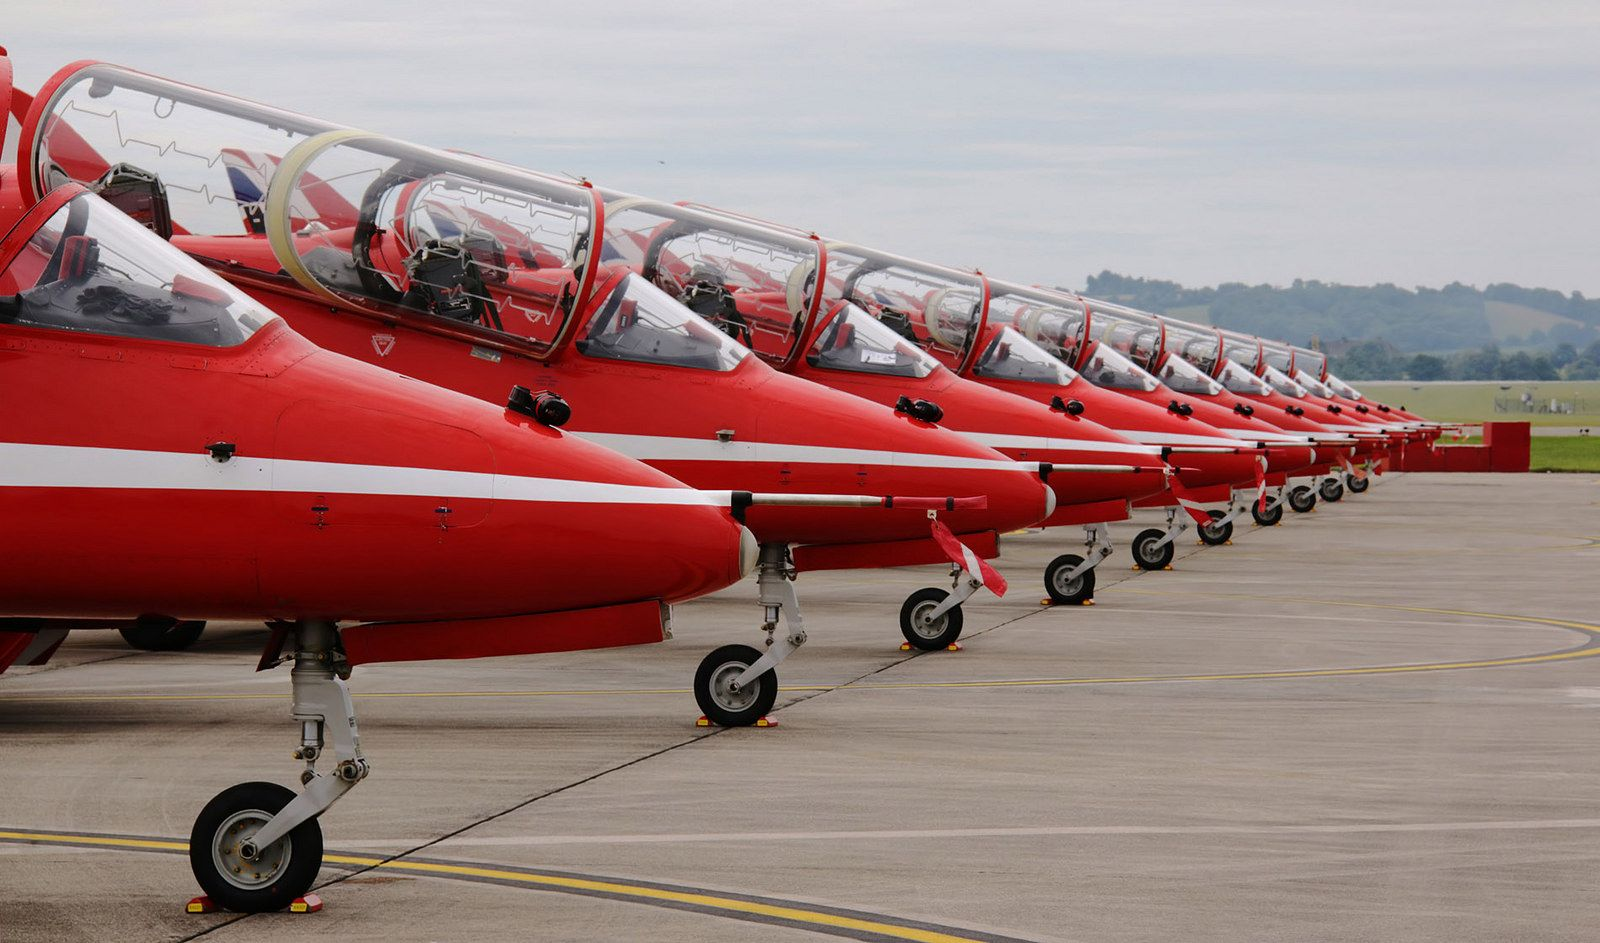 https://flic.kr/p/VtYVLd | The Crack Team | Precisely lined-up along an  apron expansion joint, all nine Royal Air Force Red Arrows Aerobatic Display Team BAE Hawks plus the spare await their display slot at the 2017 RNAS Yeovilton Air Day  IMG_0607